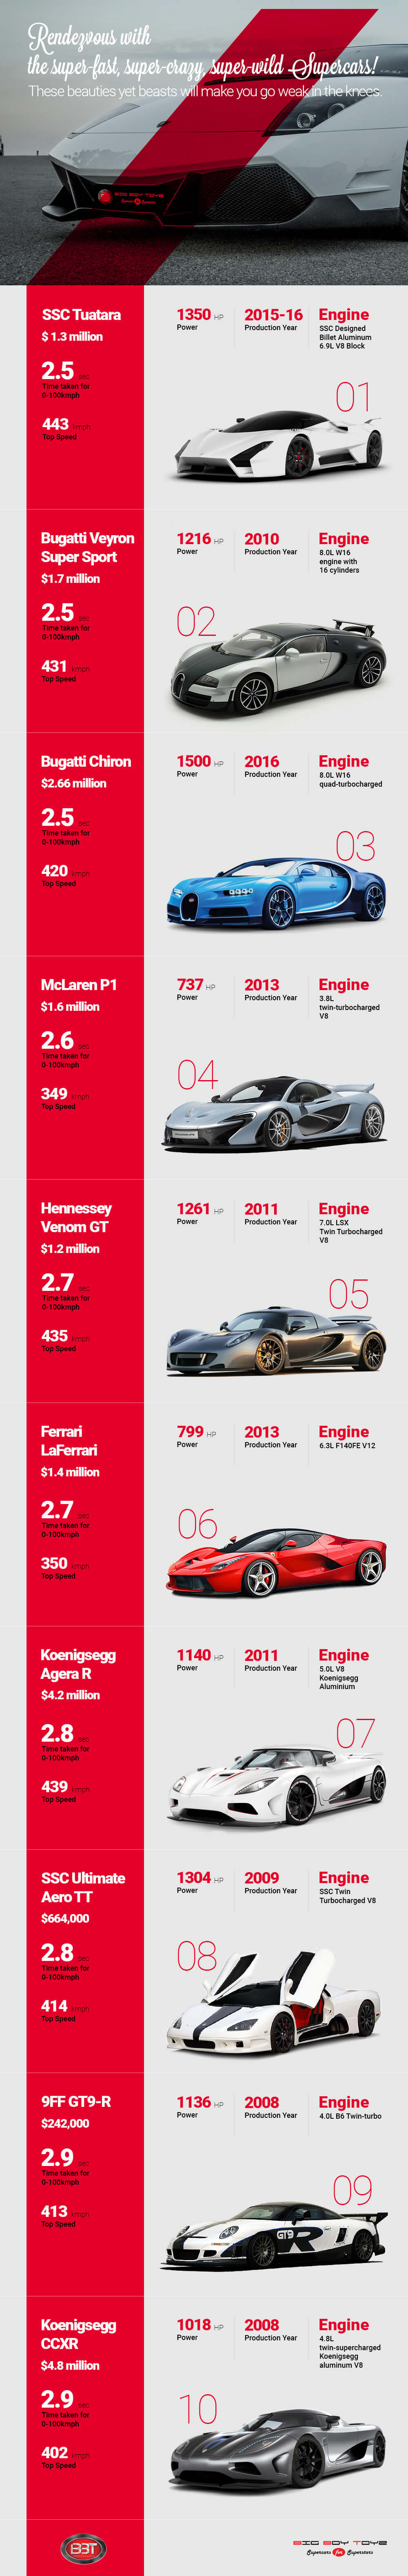 rendezvous-supercars-infographic-plaza